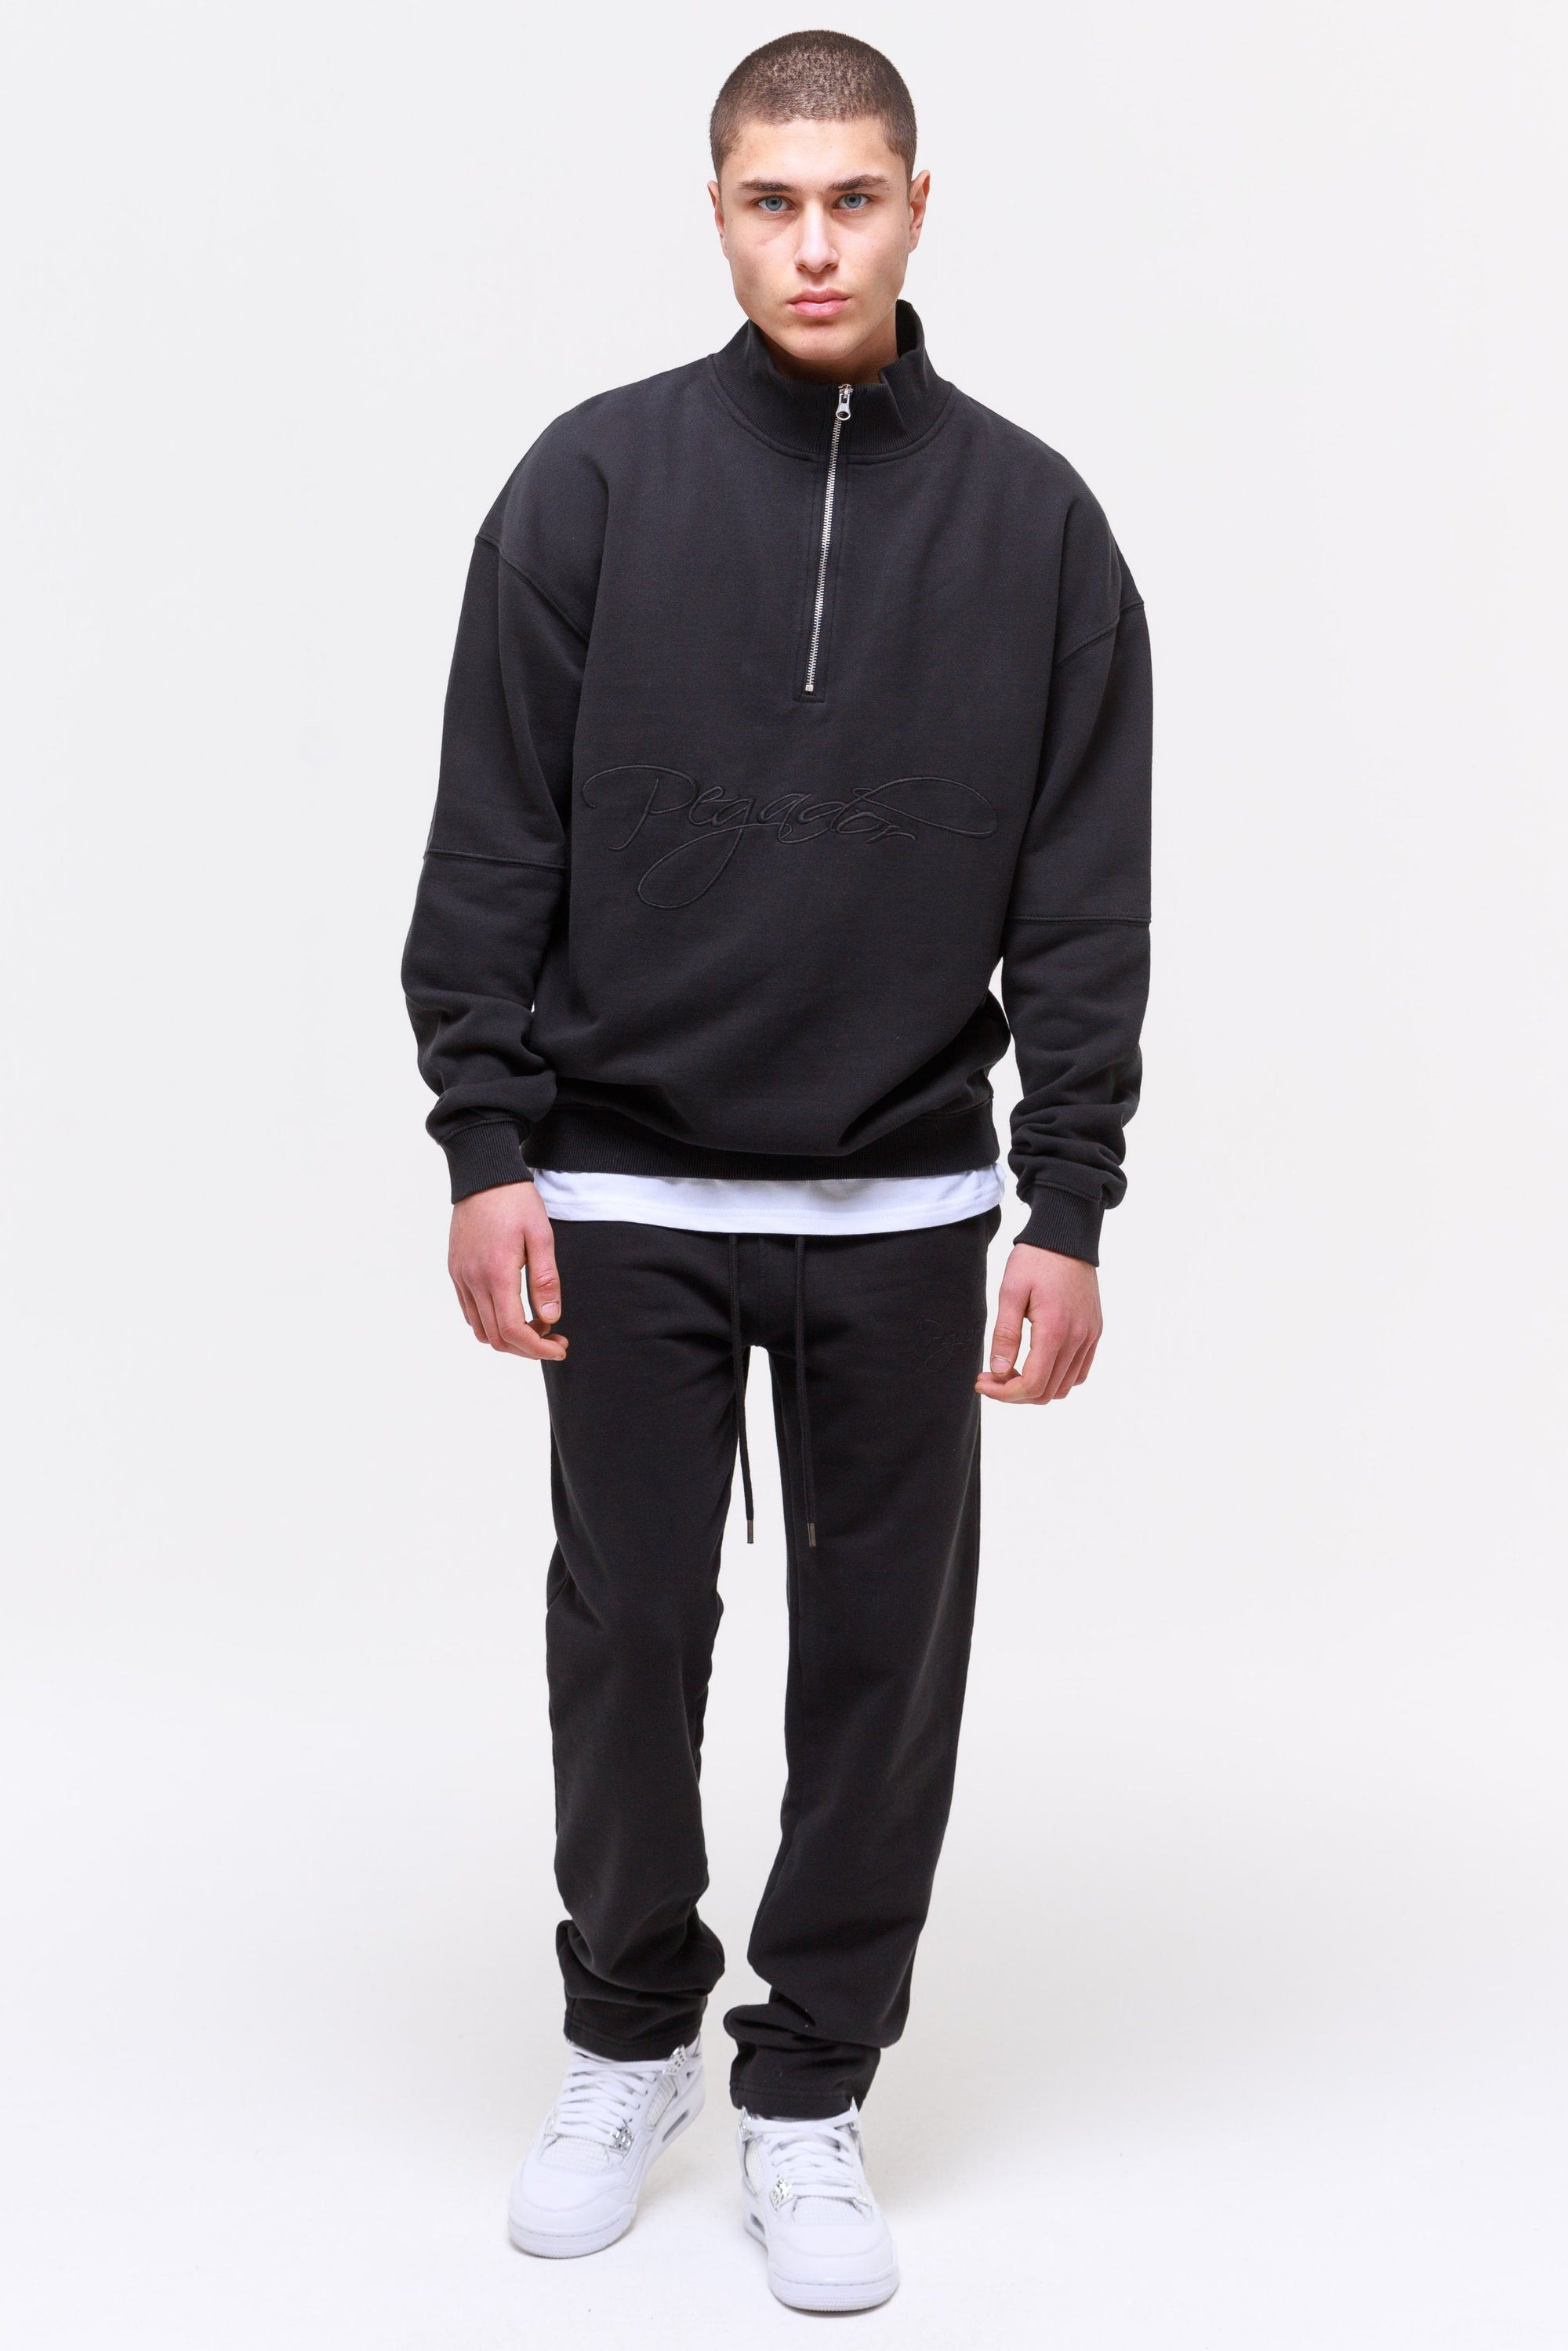 Yuma Wide Sweatpants Washed Black Pants Wild Society